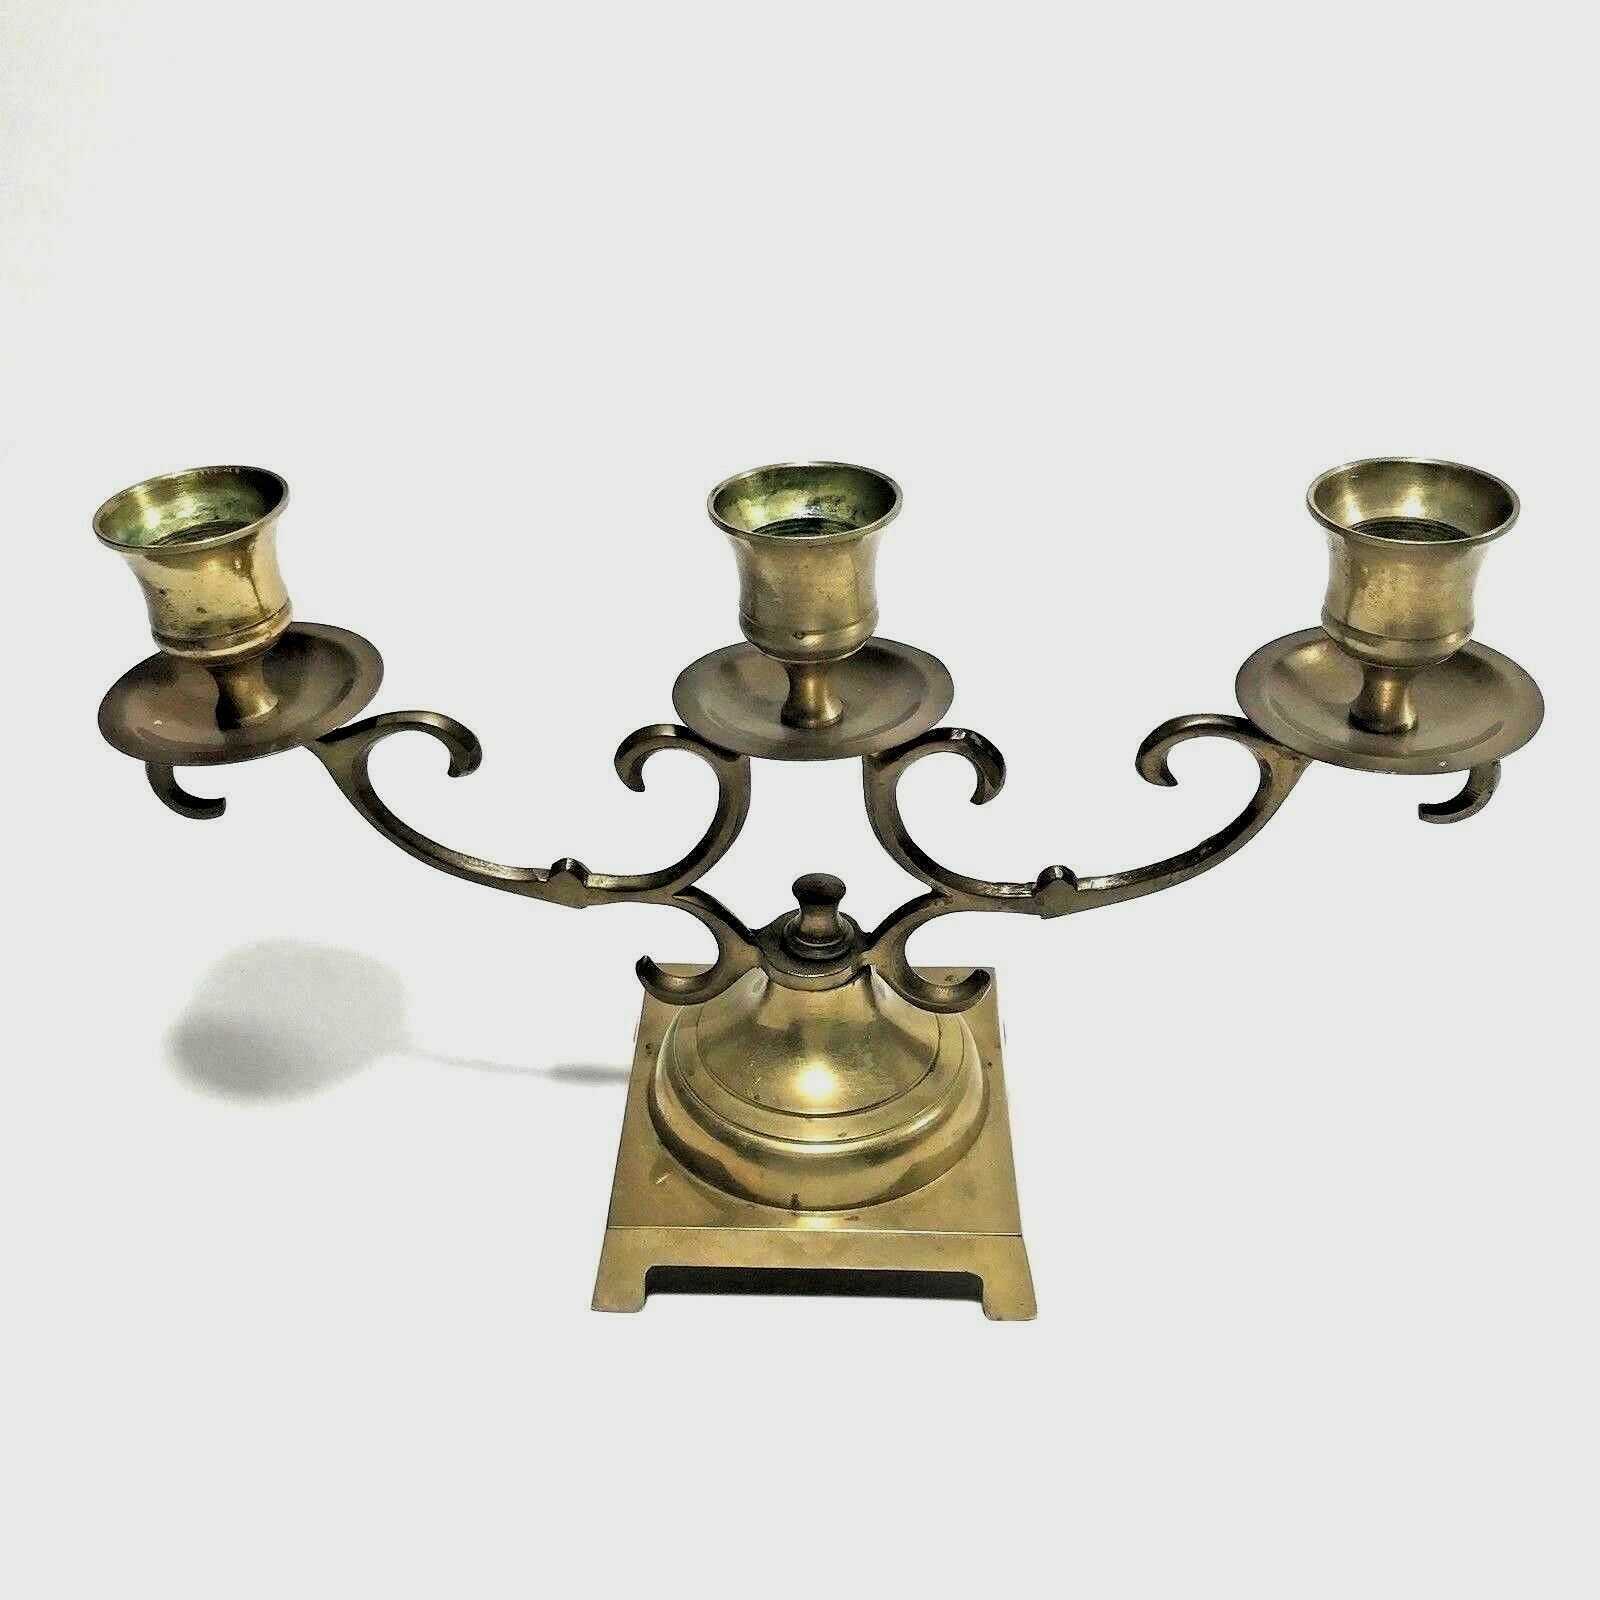 Vintage Brass Candelabra Candle Holder Center Piece Made in Japan Aged Patina